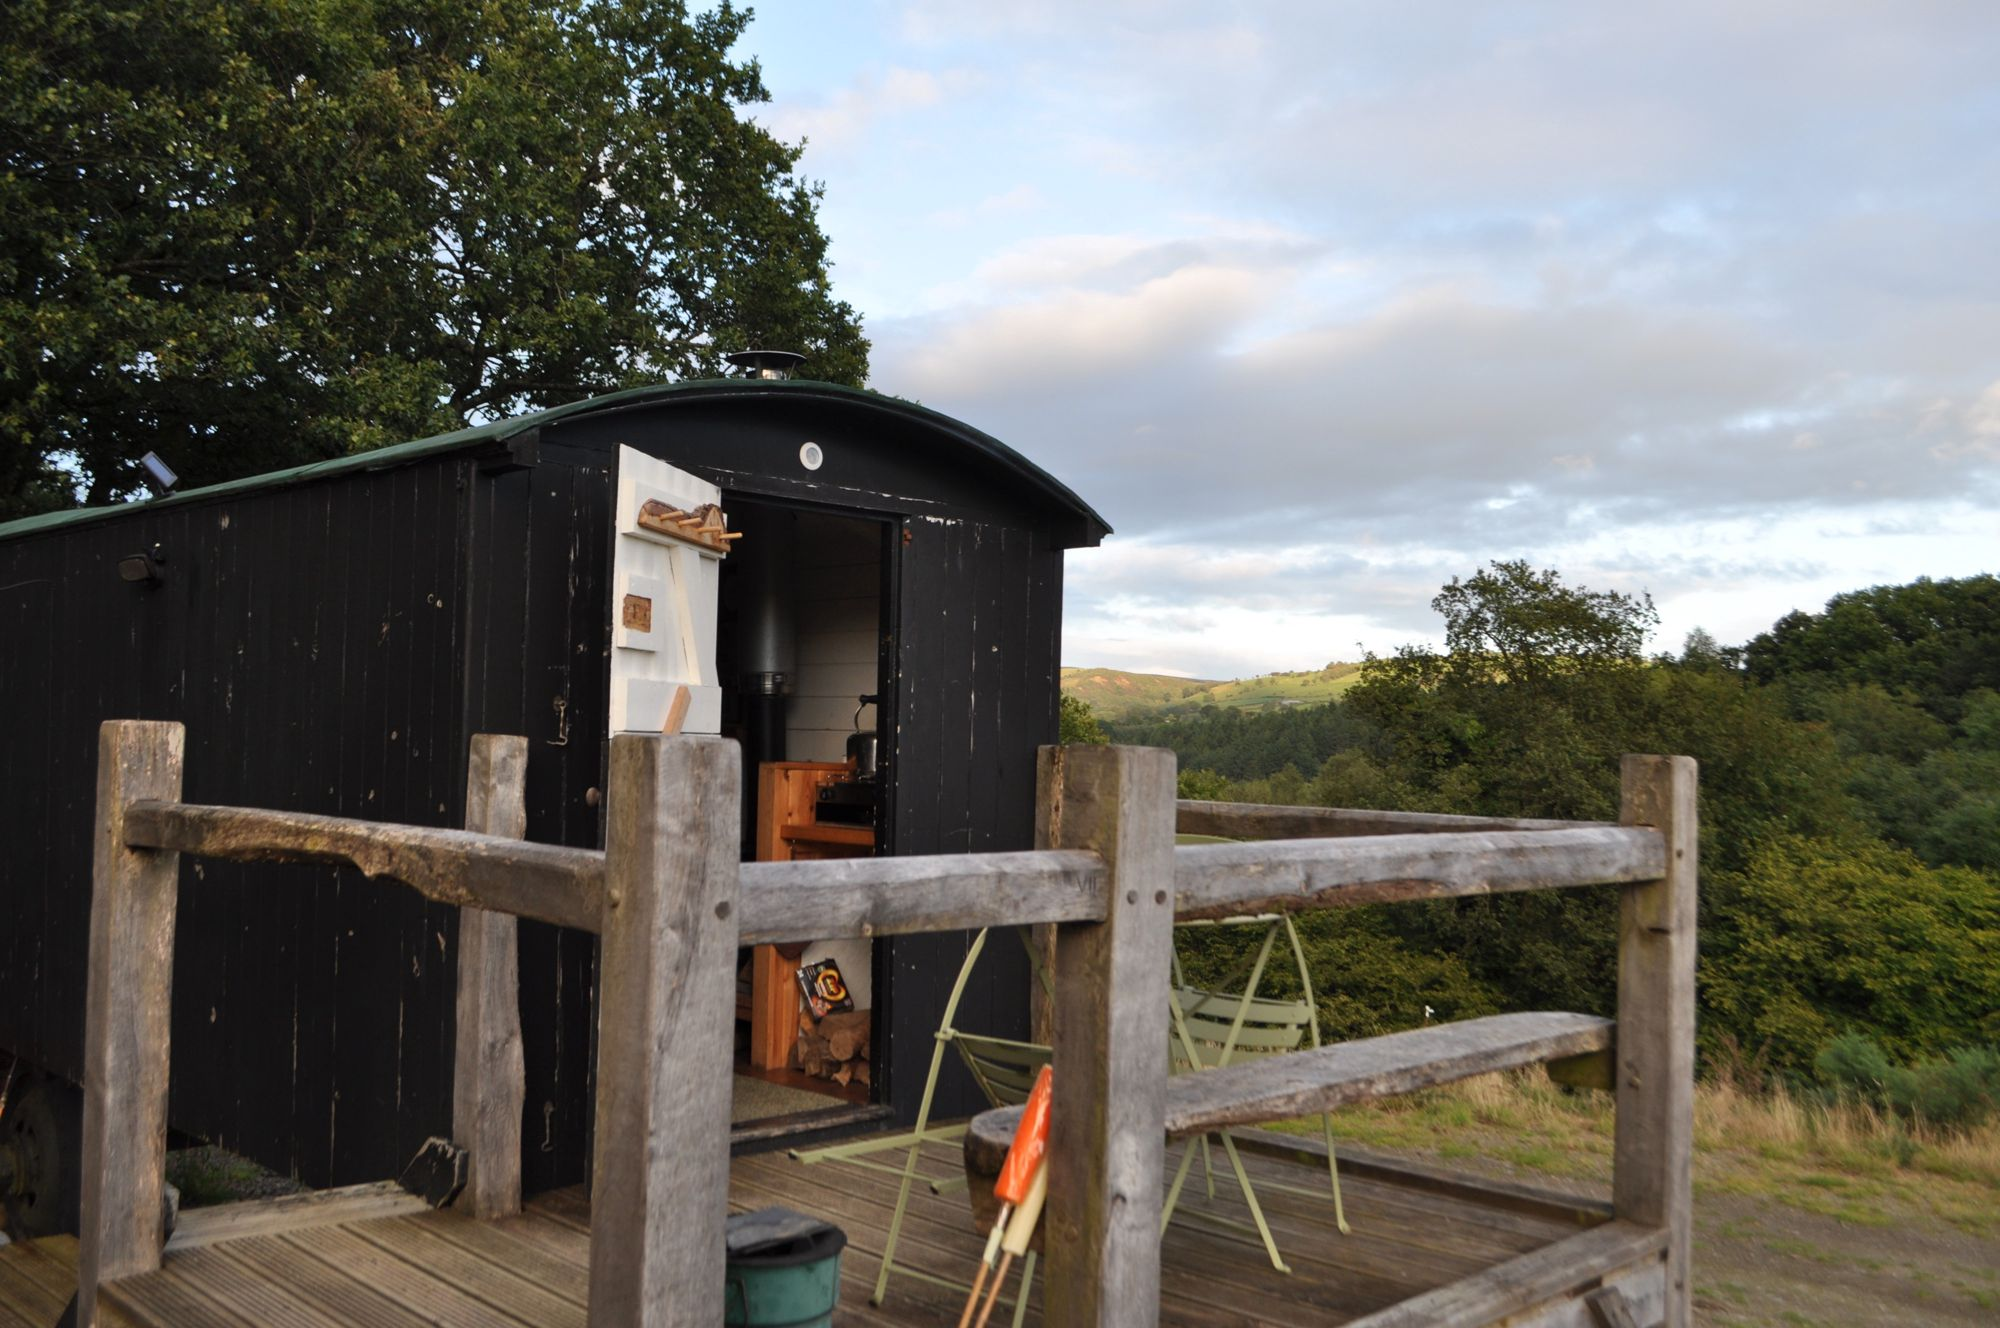 Try these refurbished Victorian shepherd & gypsy huts for a 'different' type of holiday accommodation, in a picture-perfect glade just outside the Brecon Beacons National Park.